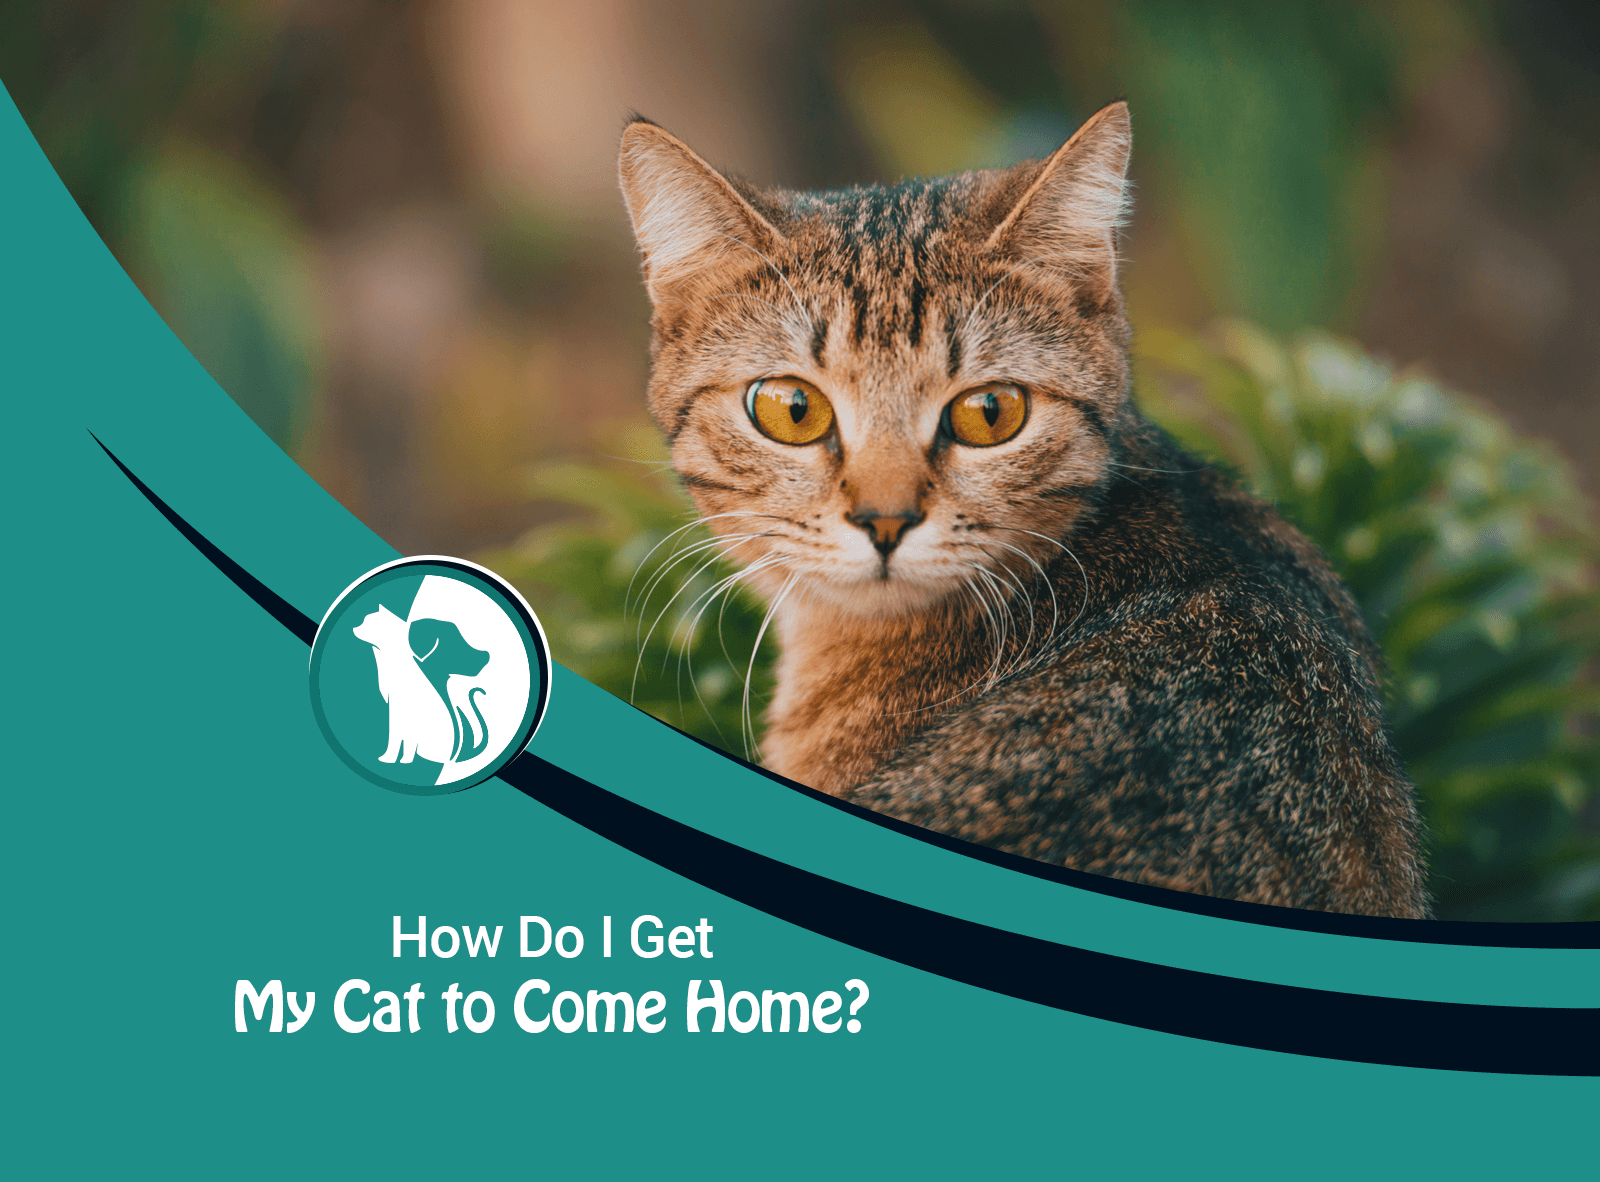 How Do I Get My Cat to Come Home?